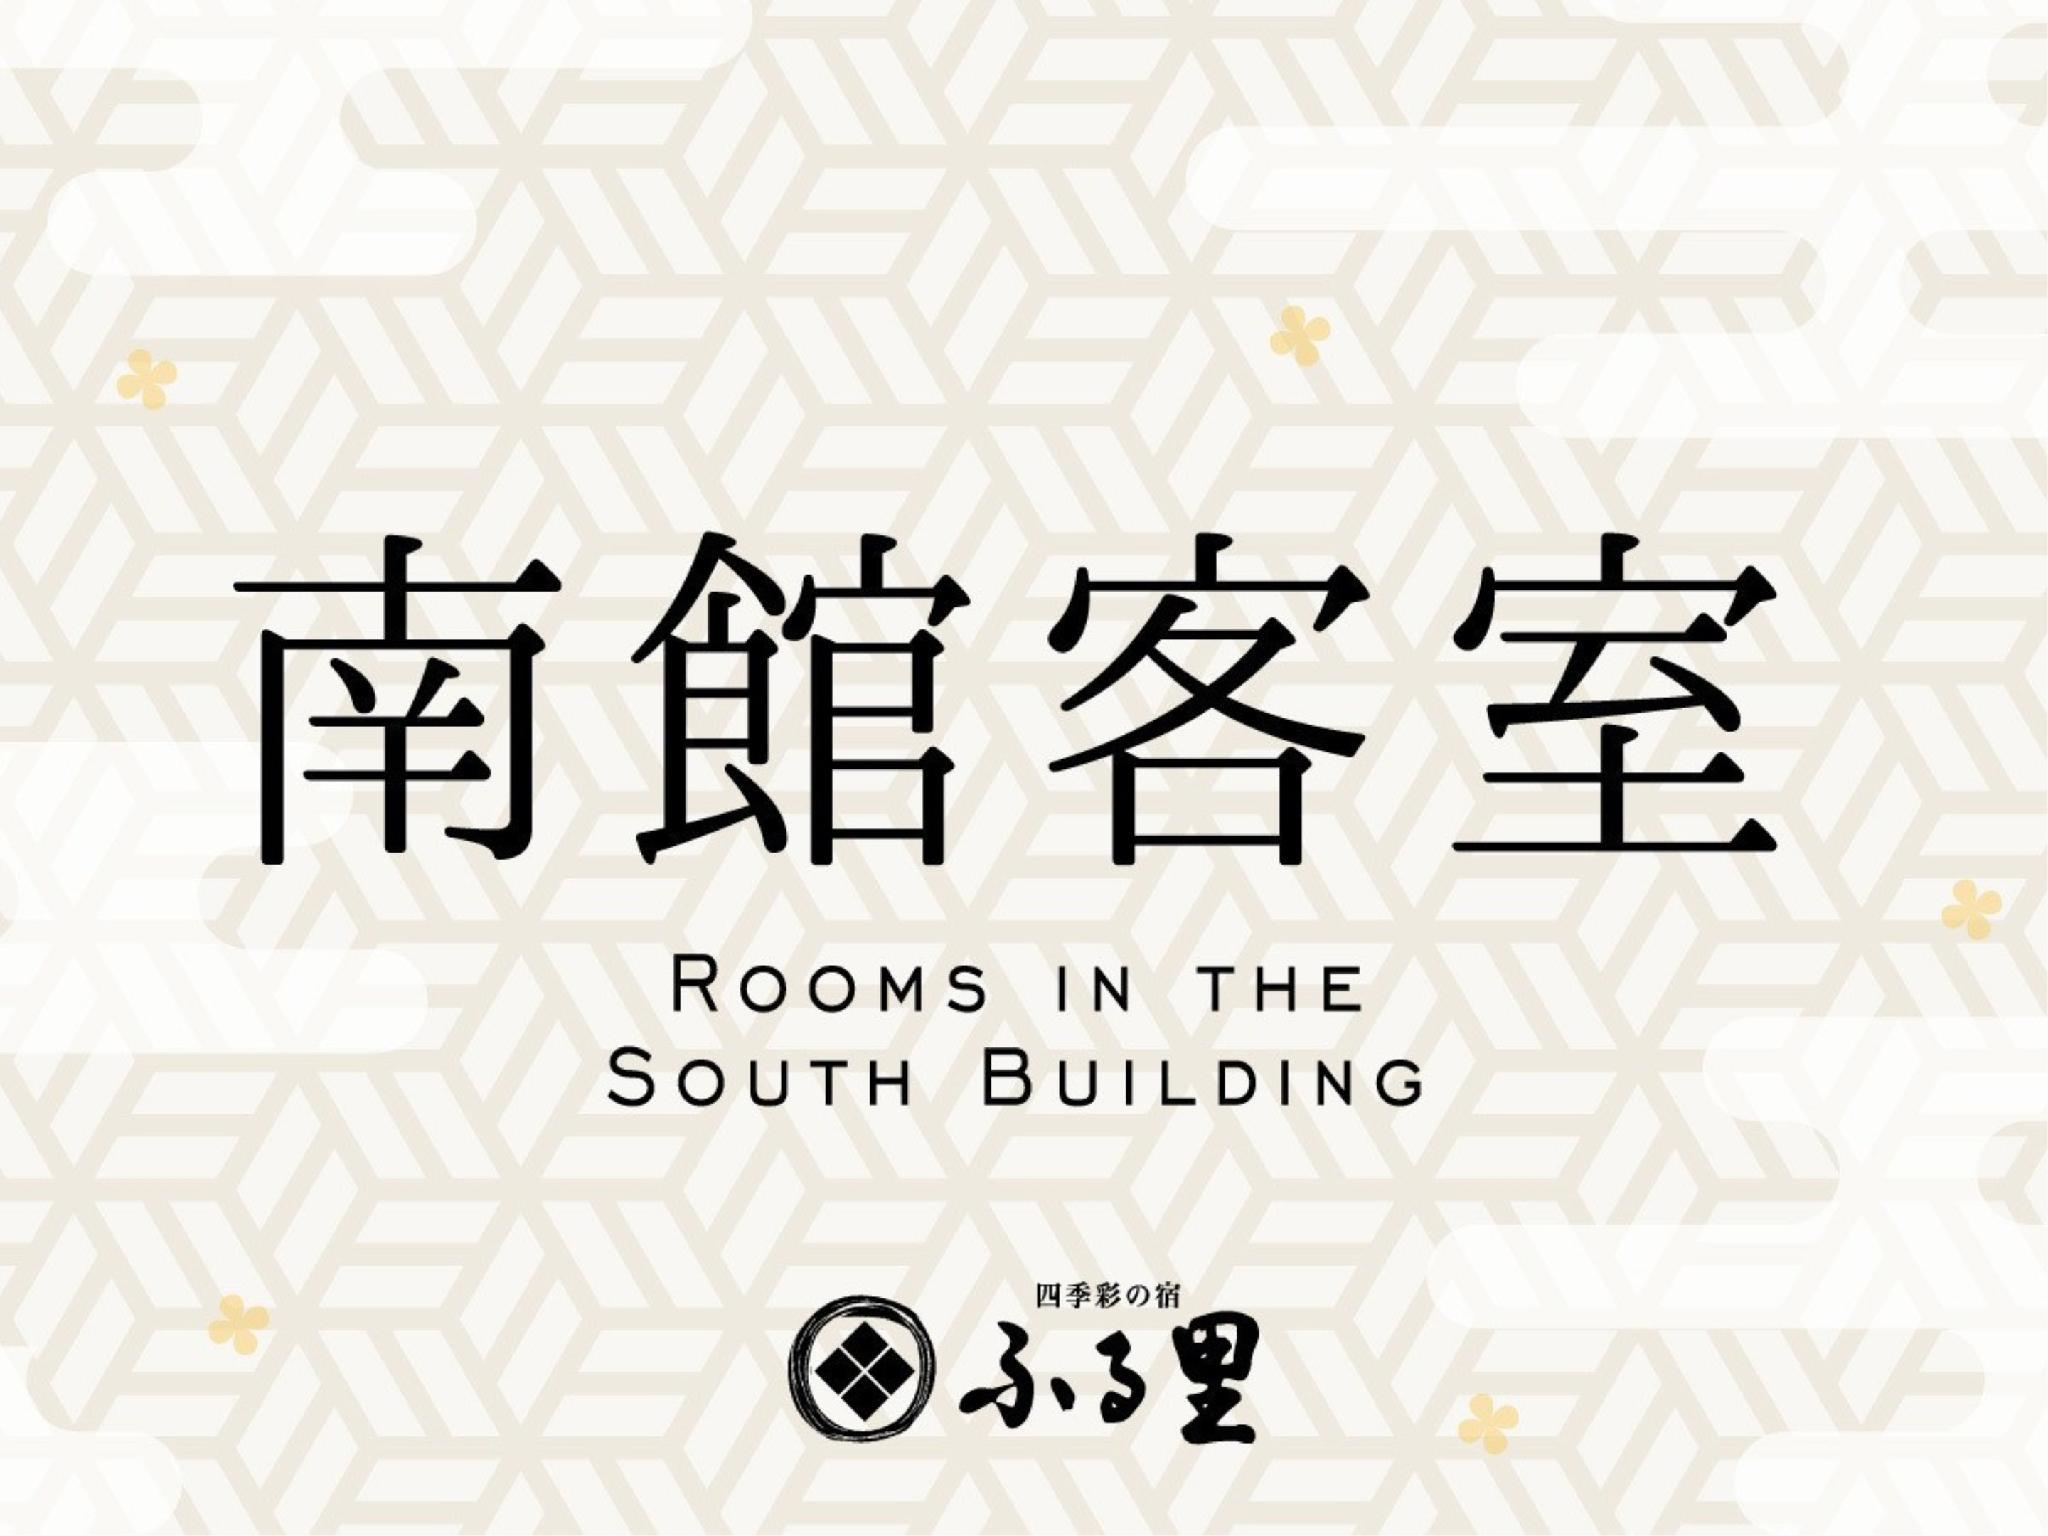 日式客房(南翼) (South Wing Japanese Style Room)